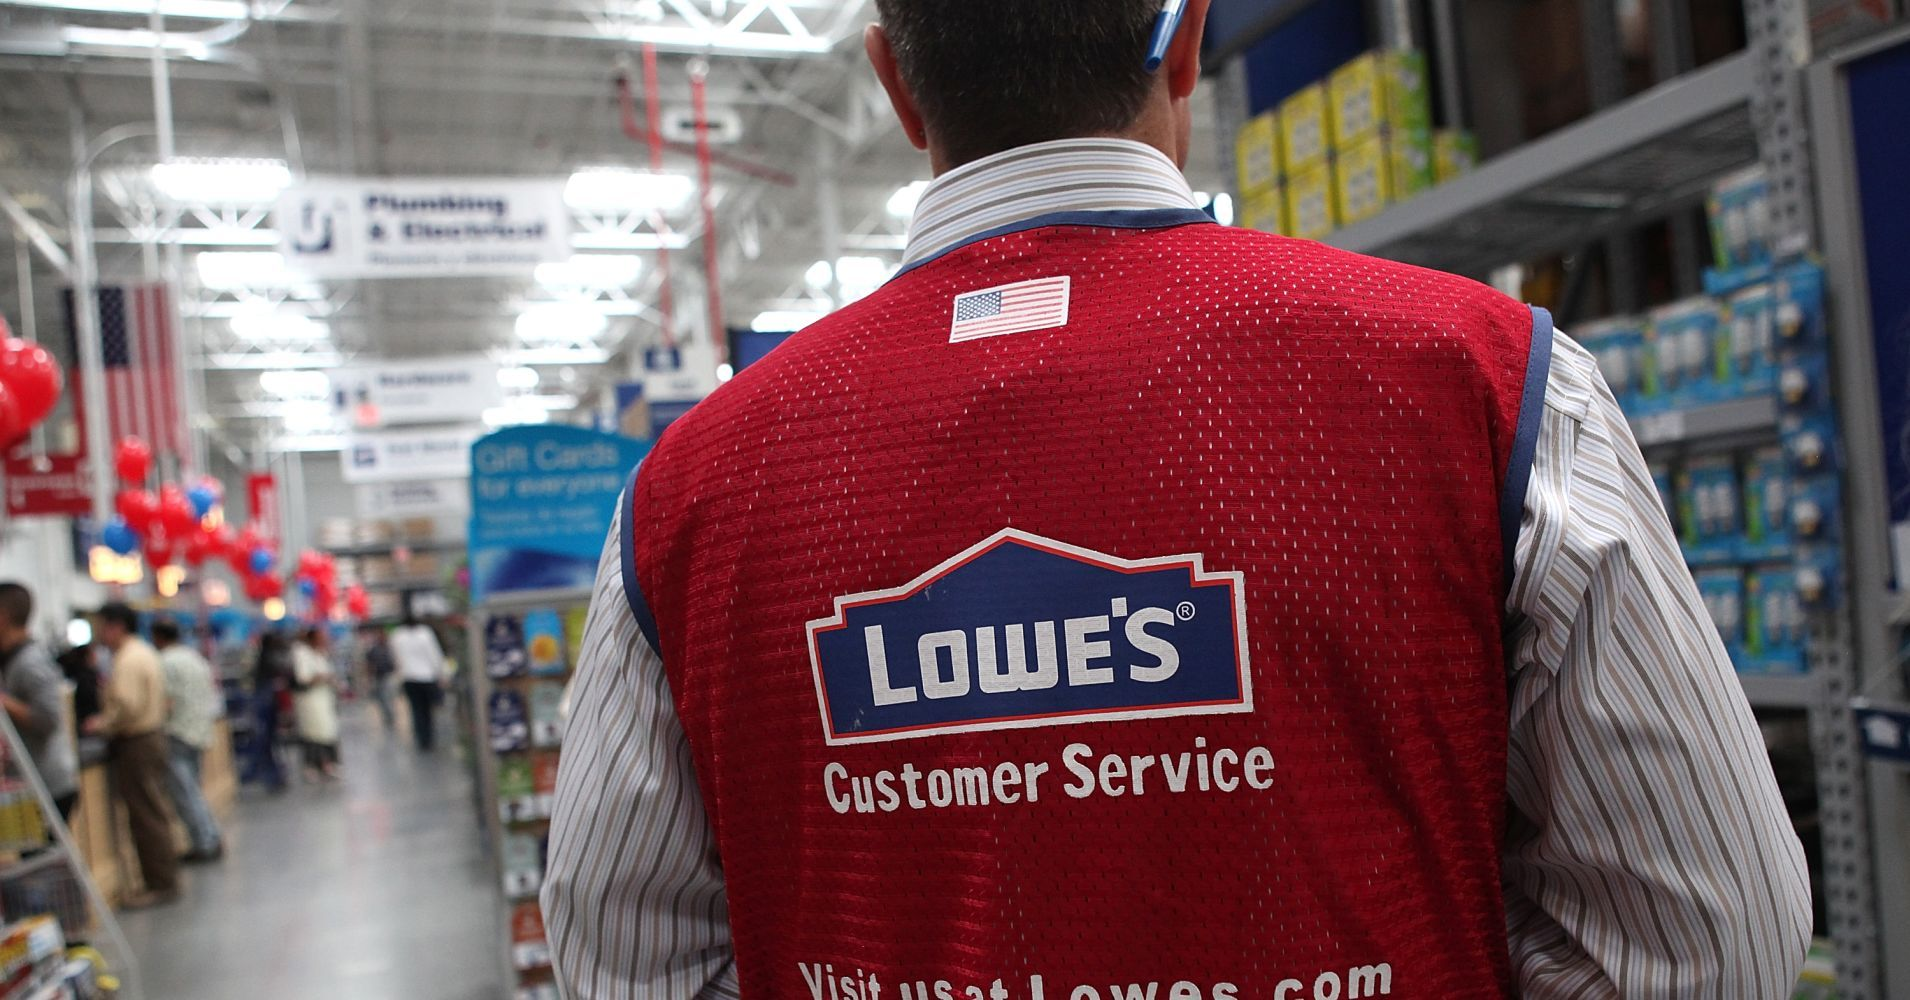 Lowe S To Shut 51 Underperforming Stores In The Us And Canada Clothing Retail Employee Uniform Employee